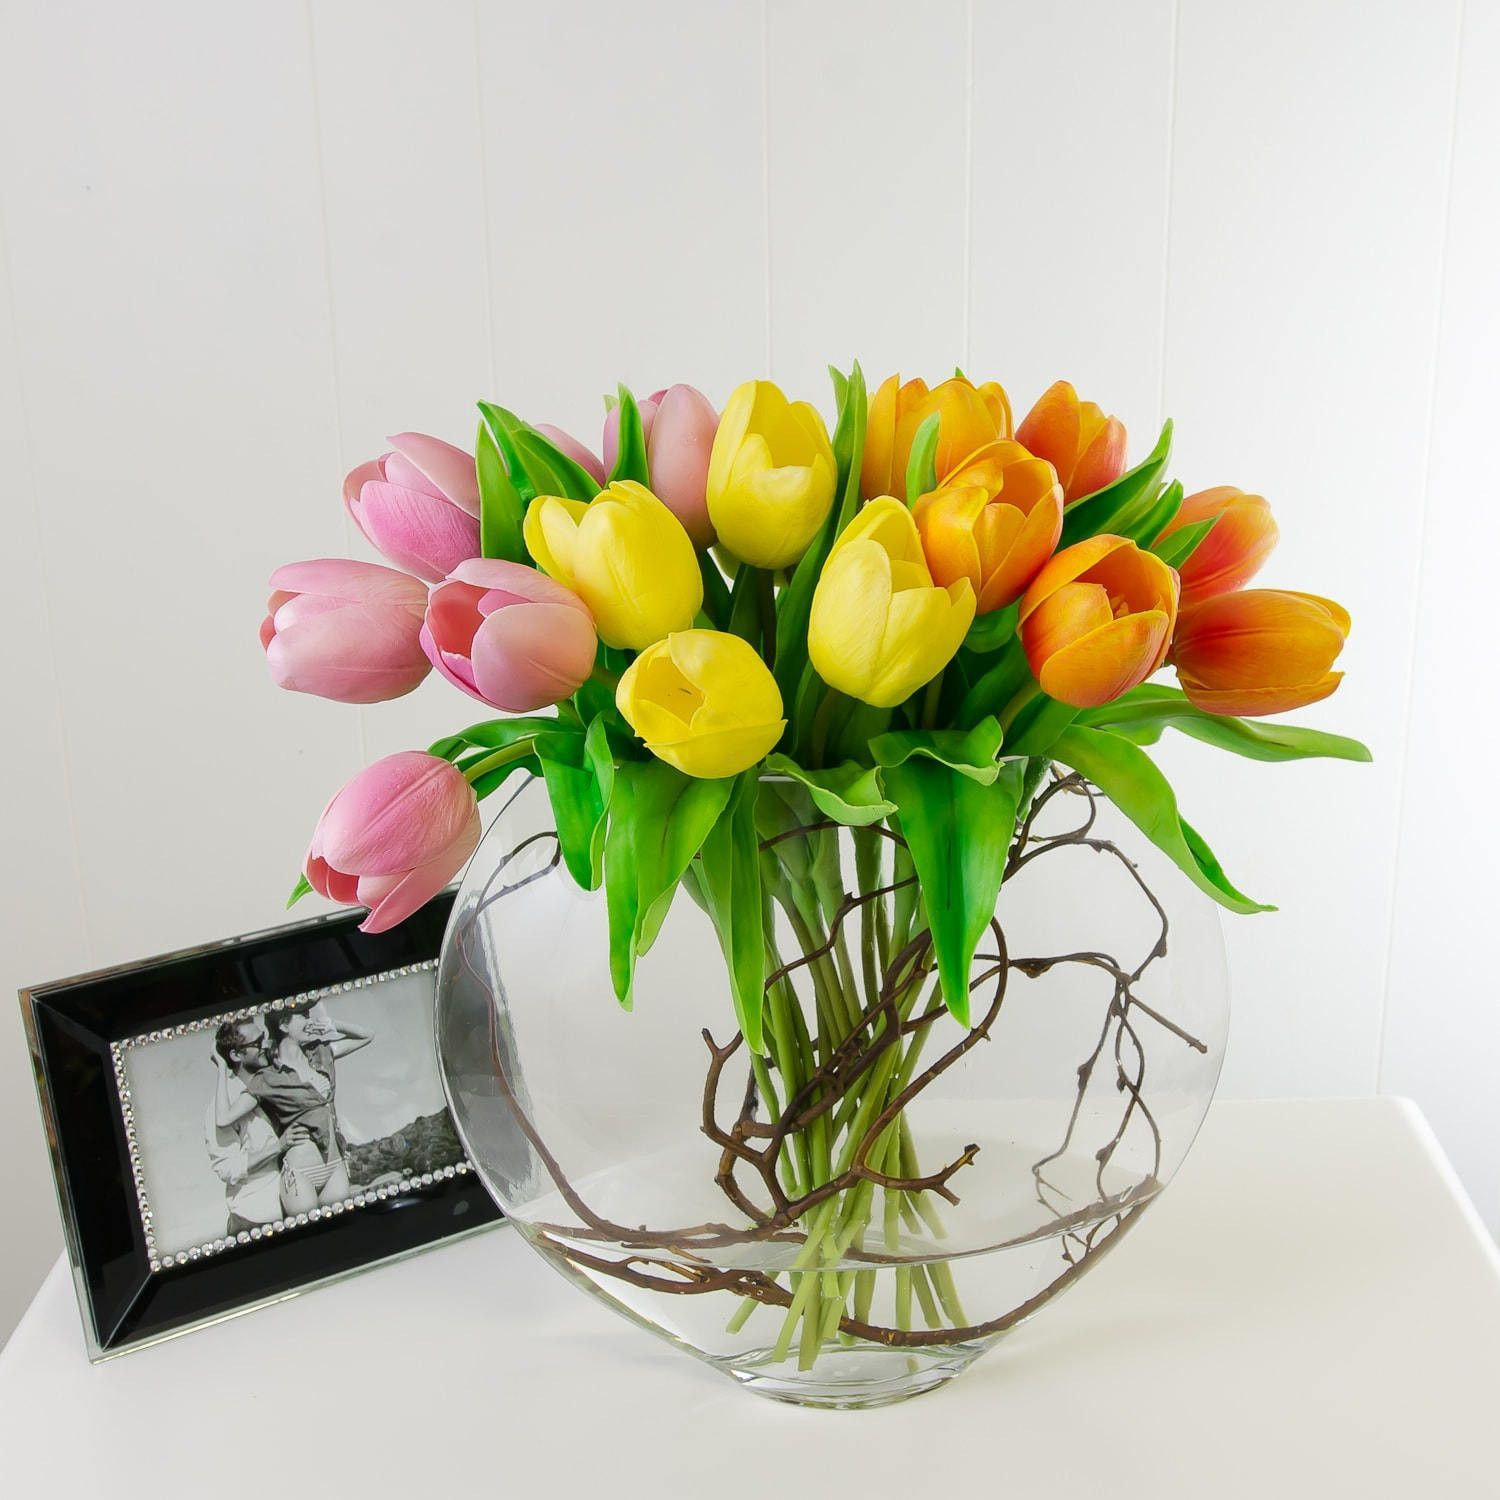 tulips real vase zoom fullxfull arranged glass touch il nz white in round arrangement tulip listing